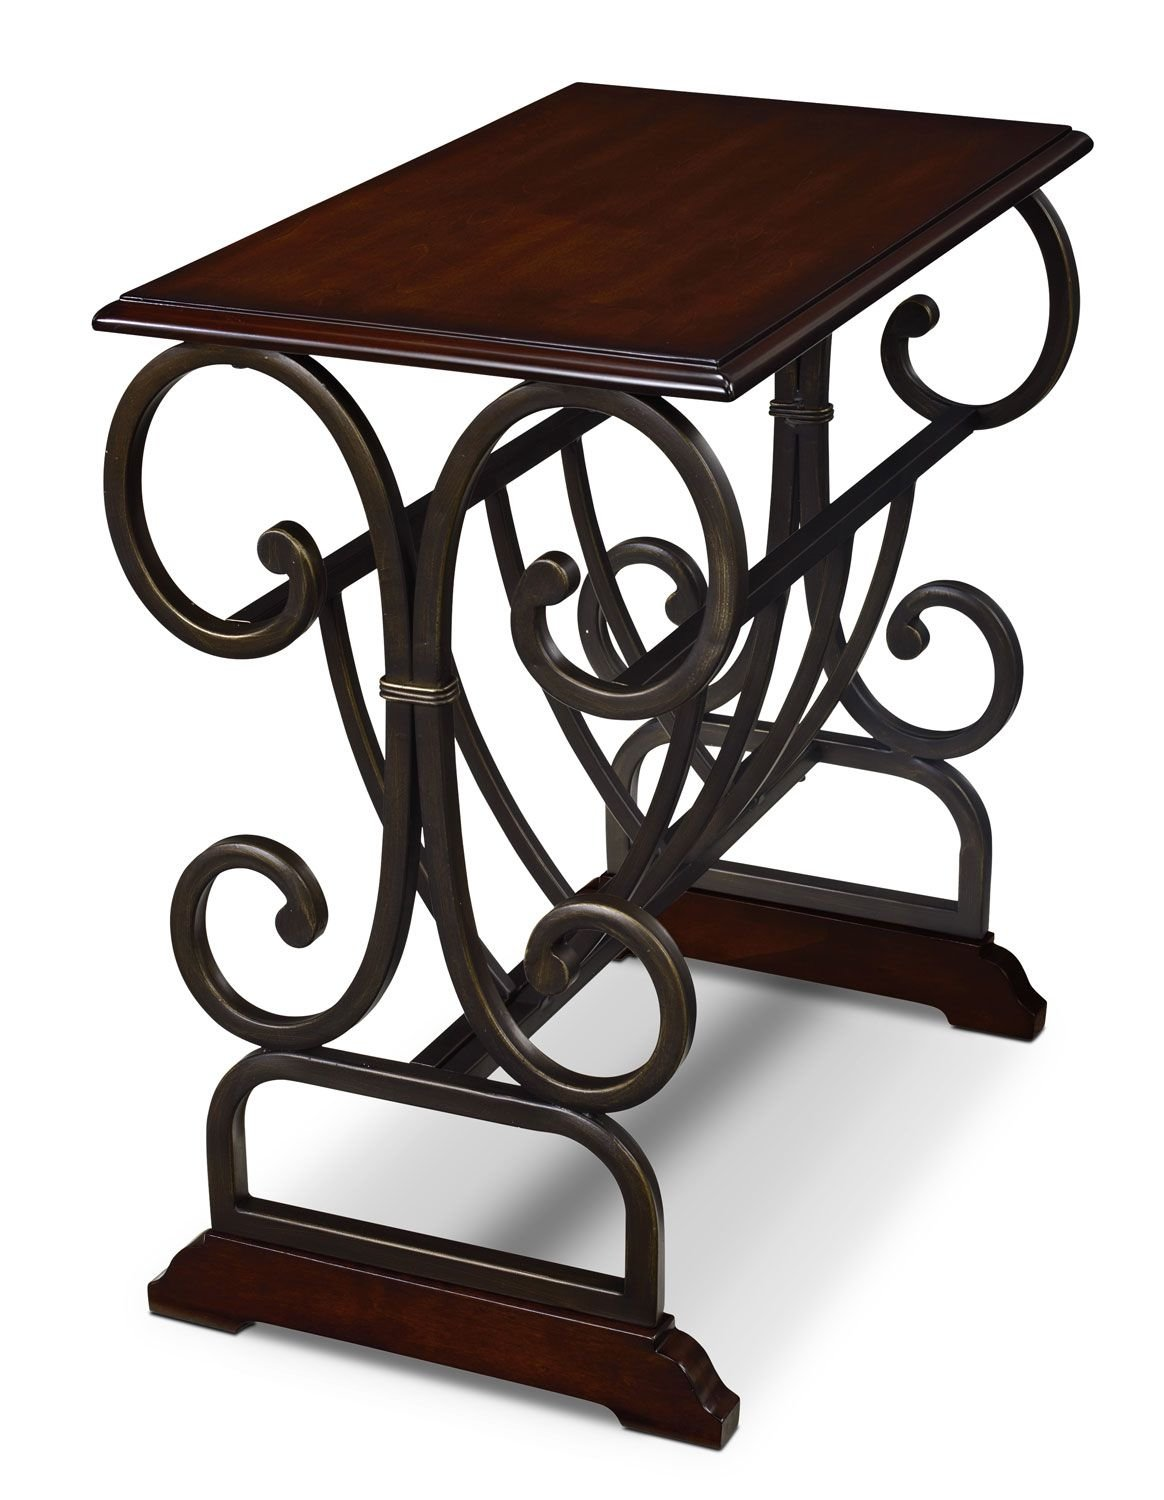 gander accent table with magazine rack brown cherry the brick tables edmonton cherrytable appoint avec armature metal brun cerisier verizon tablet small half moon blue porcelain